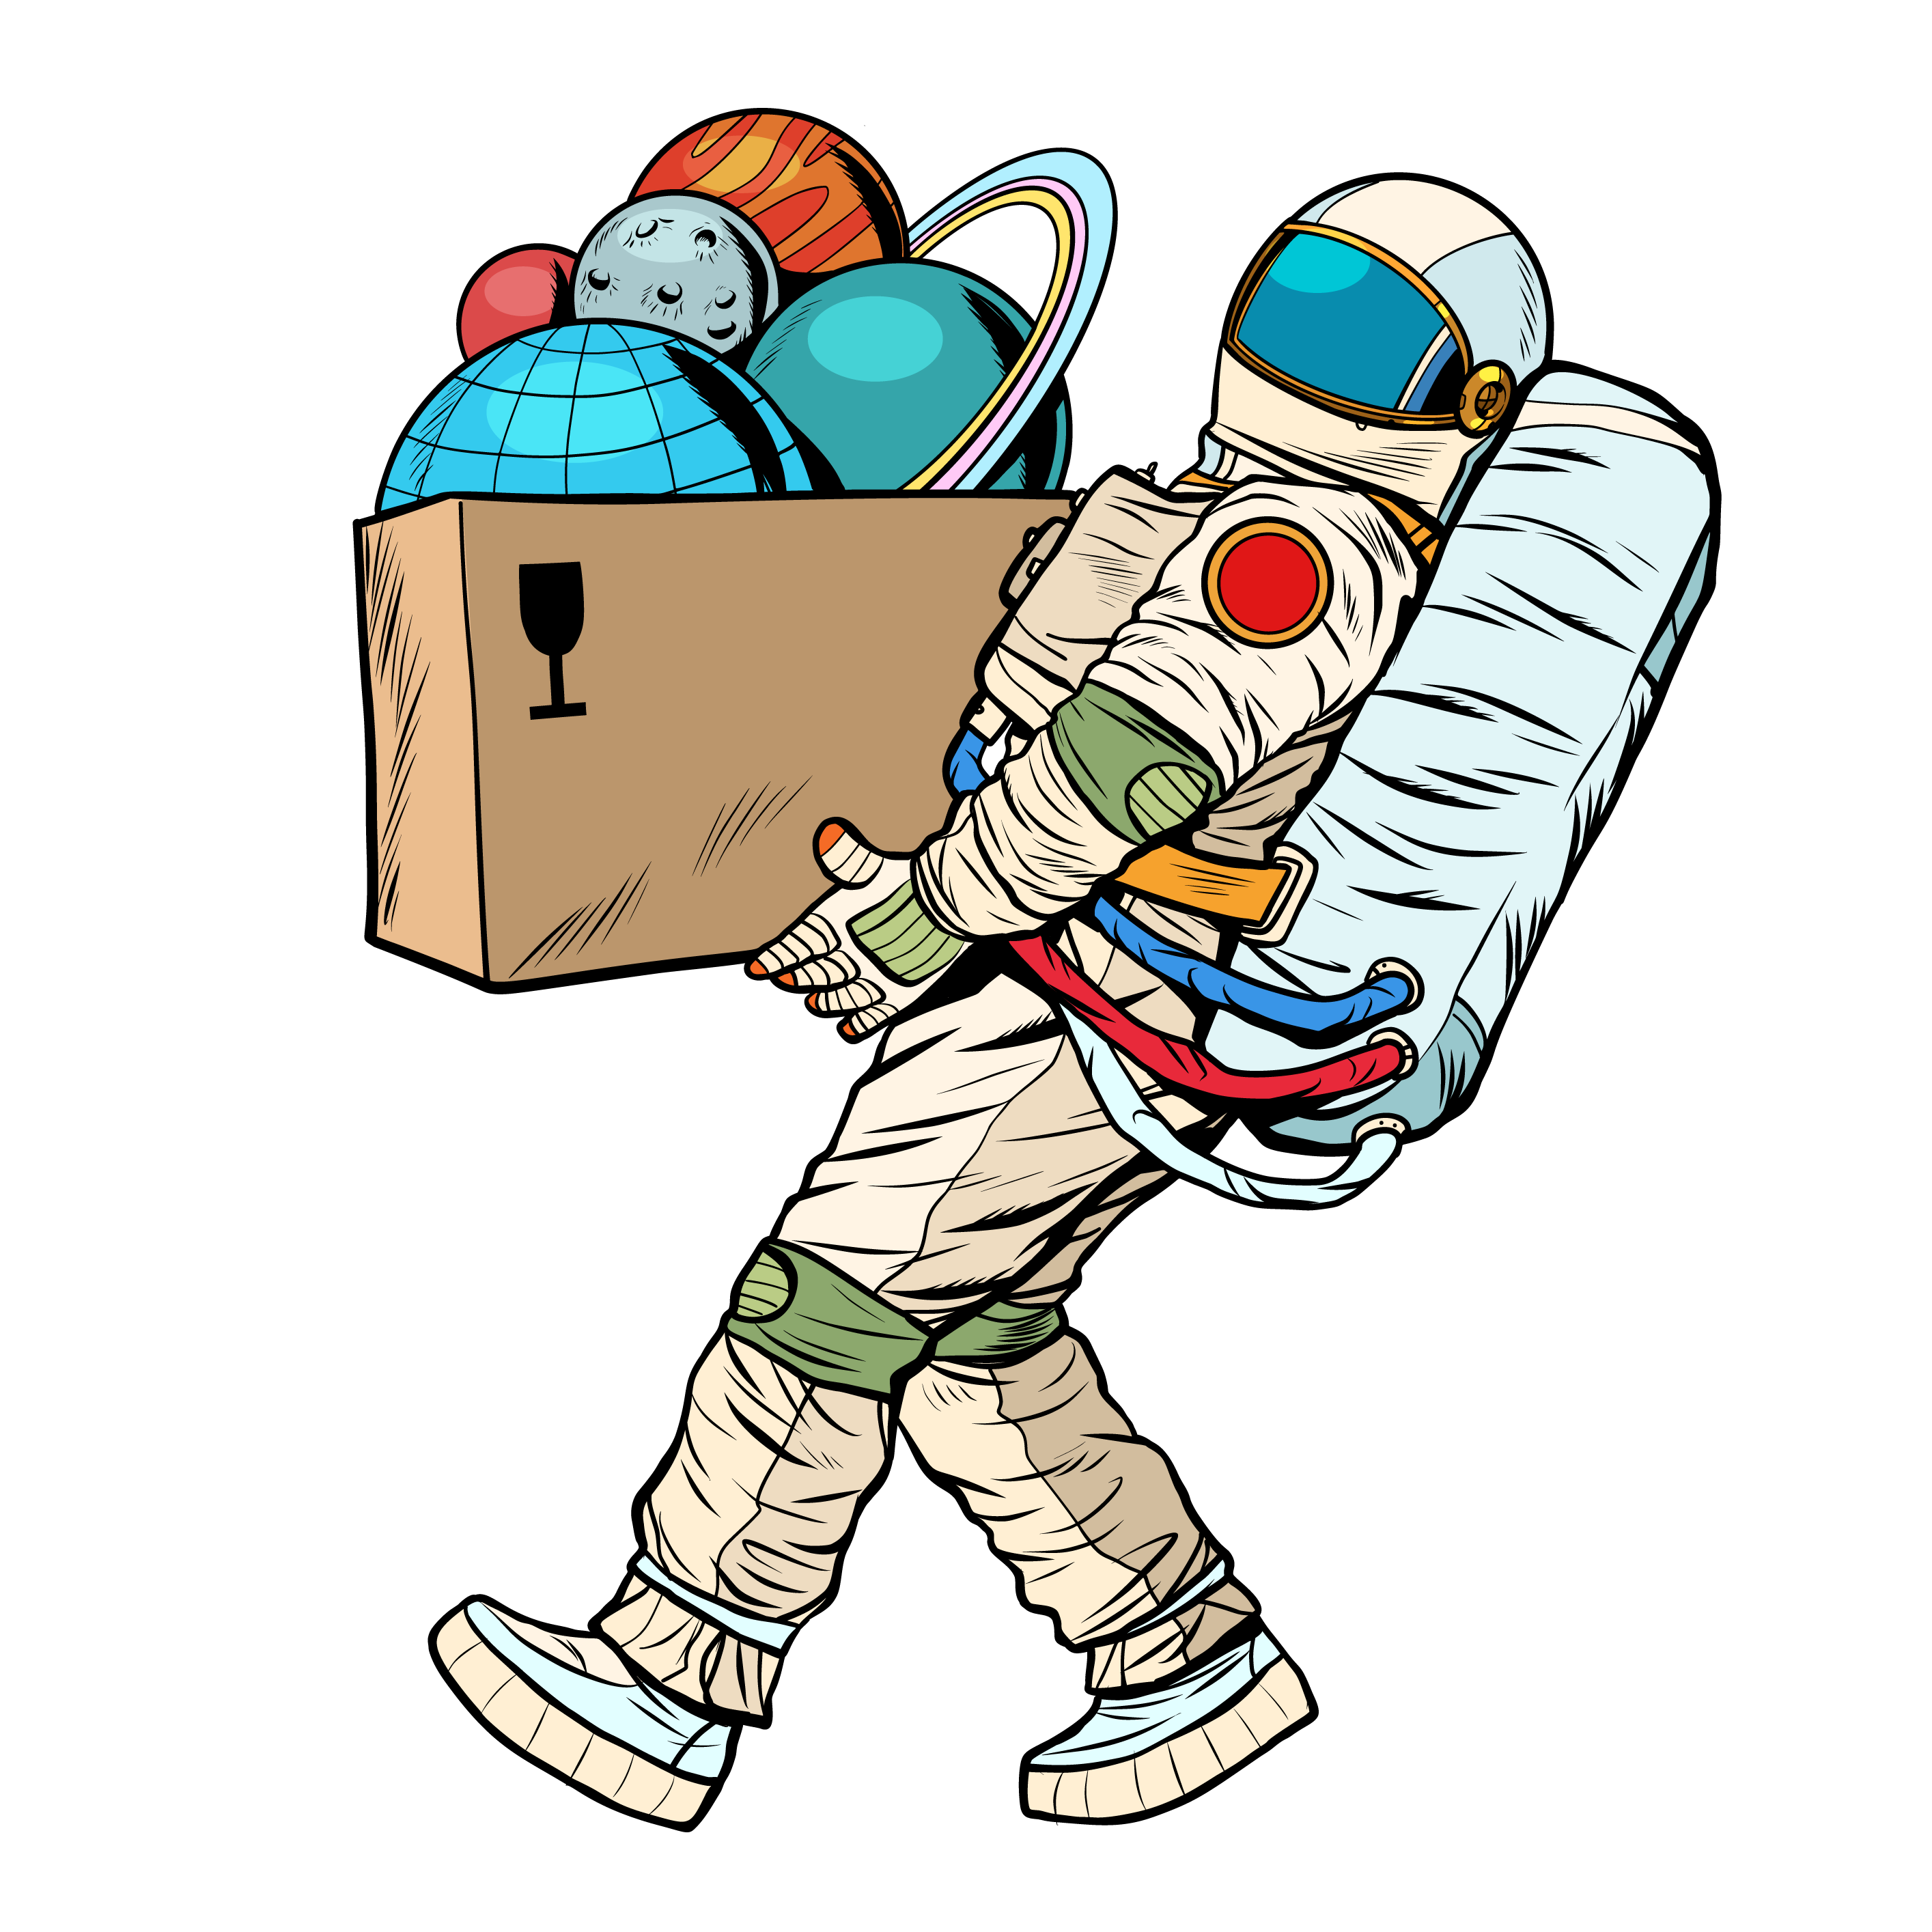 VR astronaut with globe in a box 10 11 21 JPEG